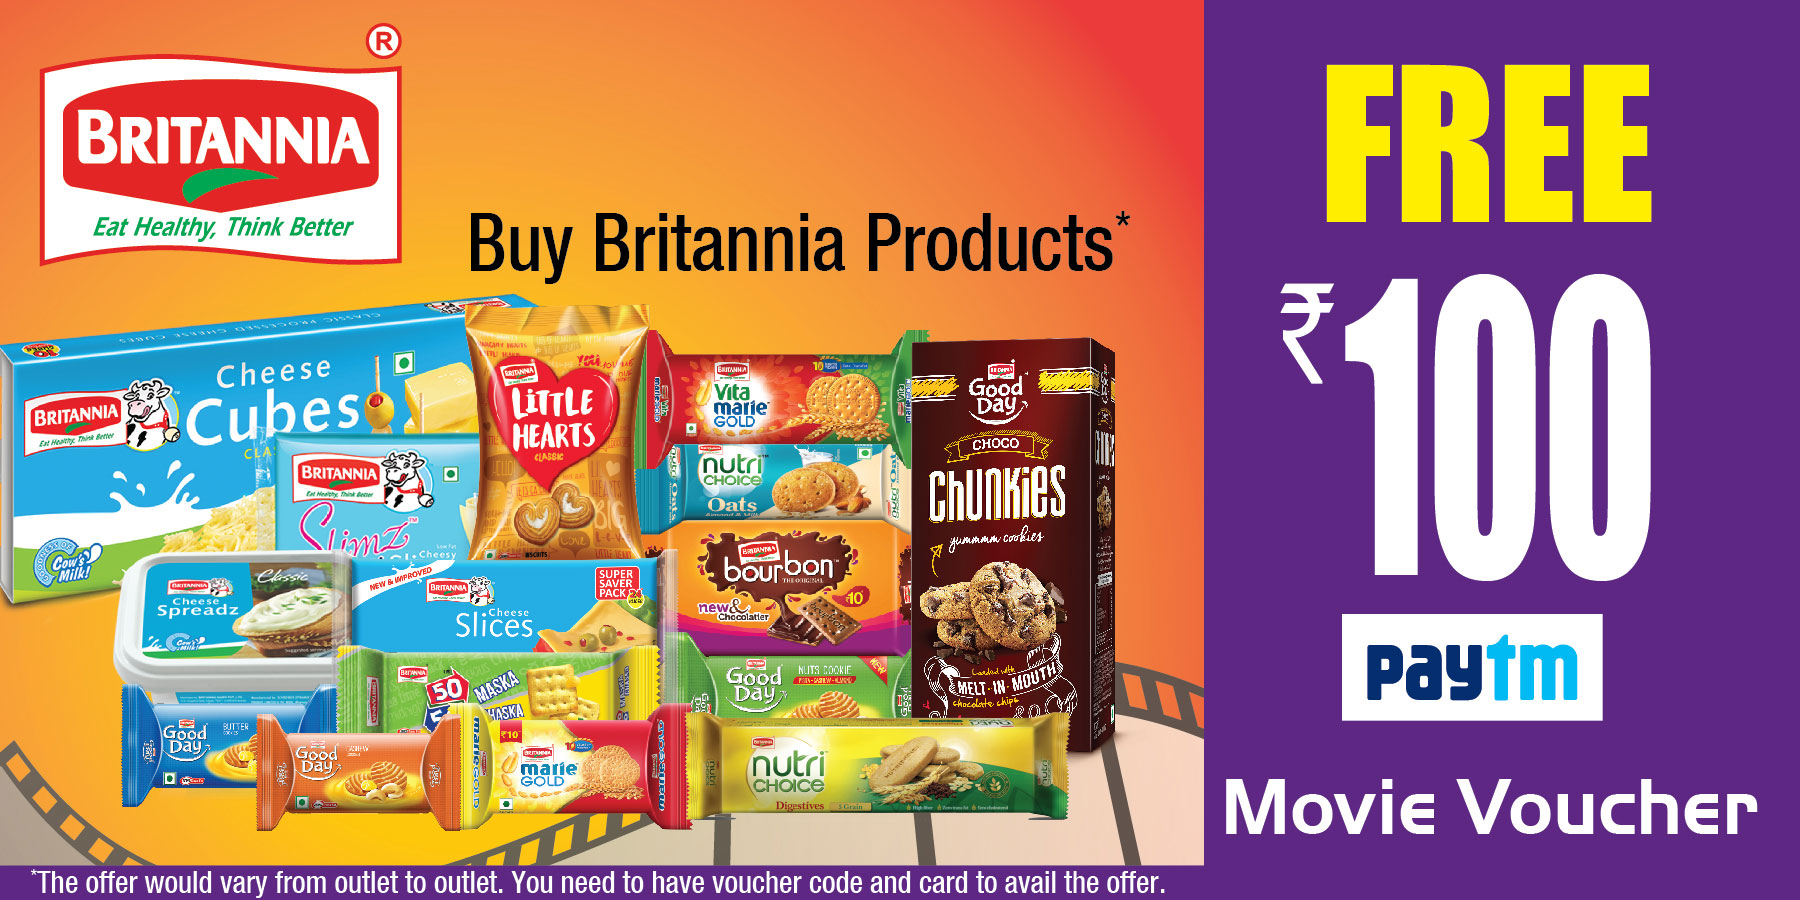 Get FREE Rs.100 Movie Voucher WITH Any Packs Of Britannia Product 1